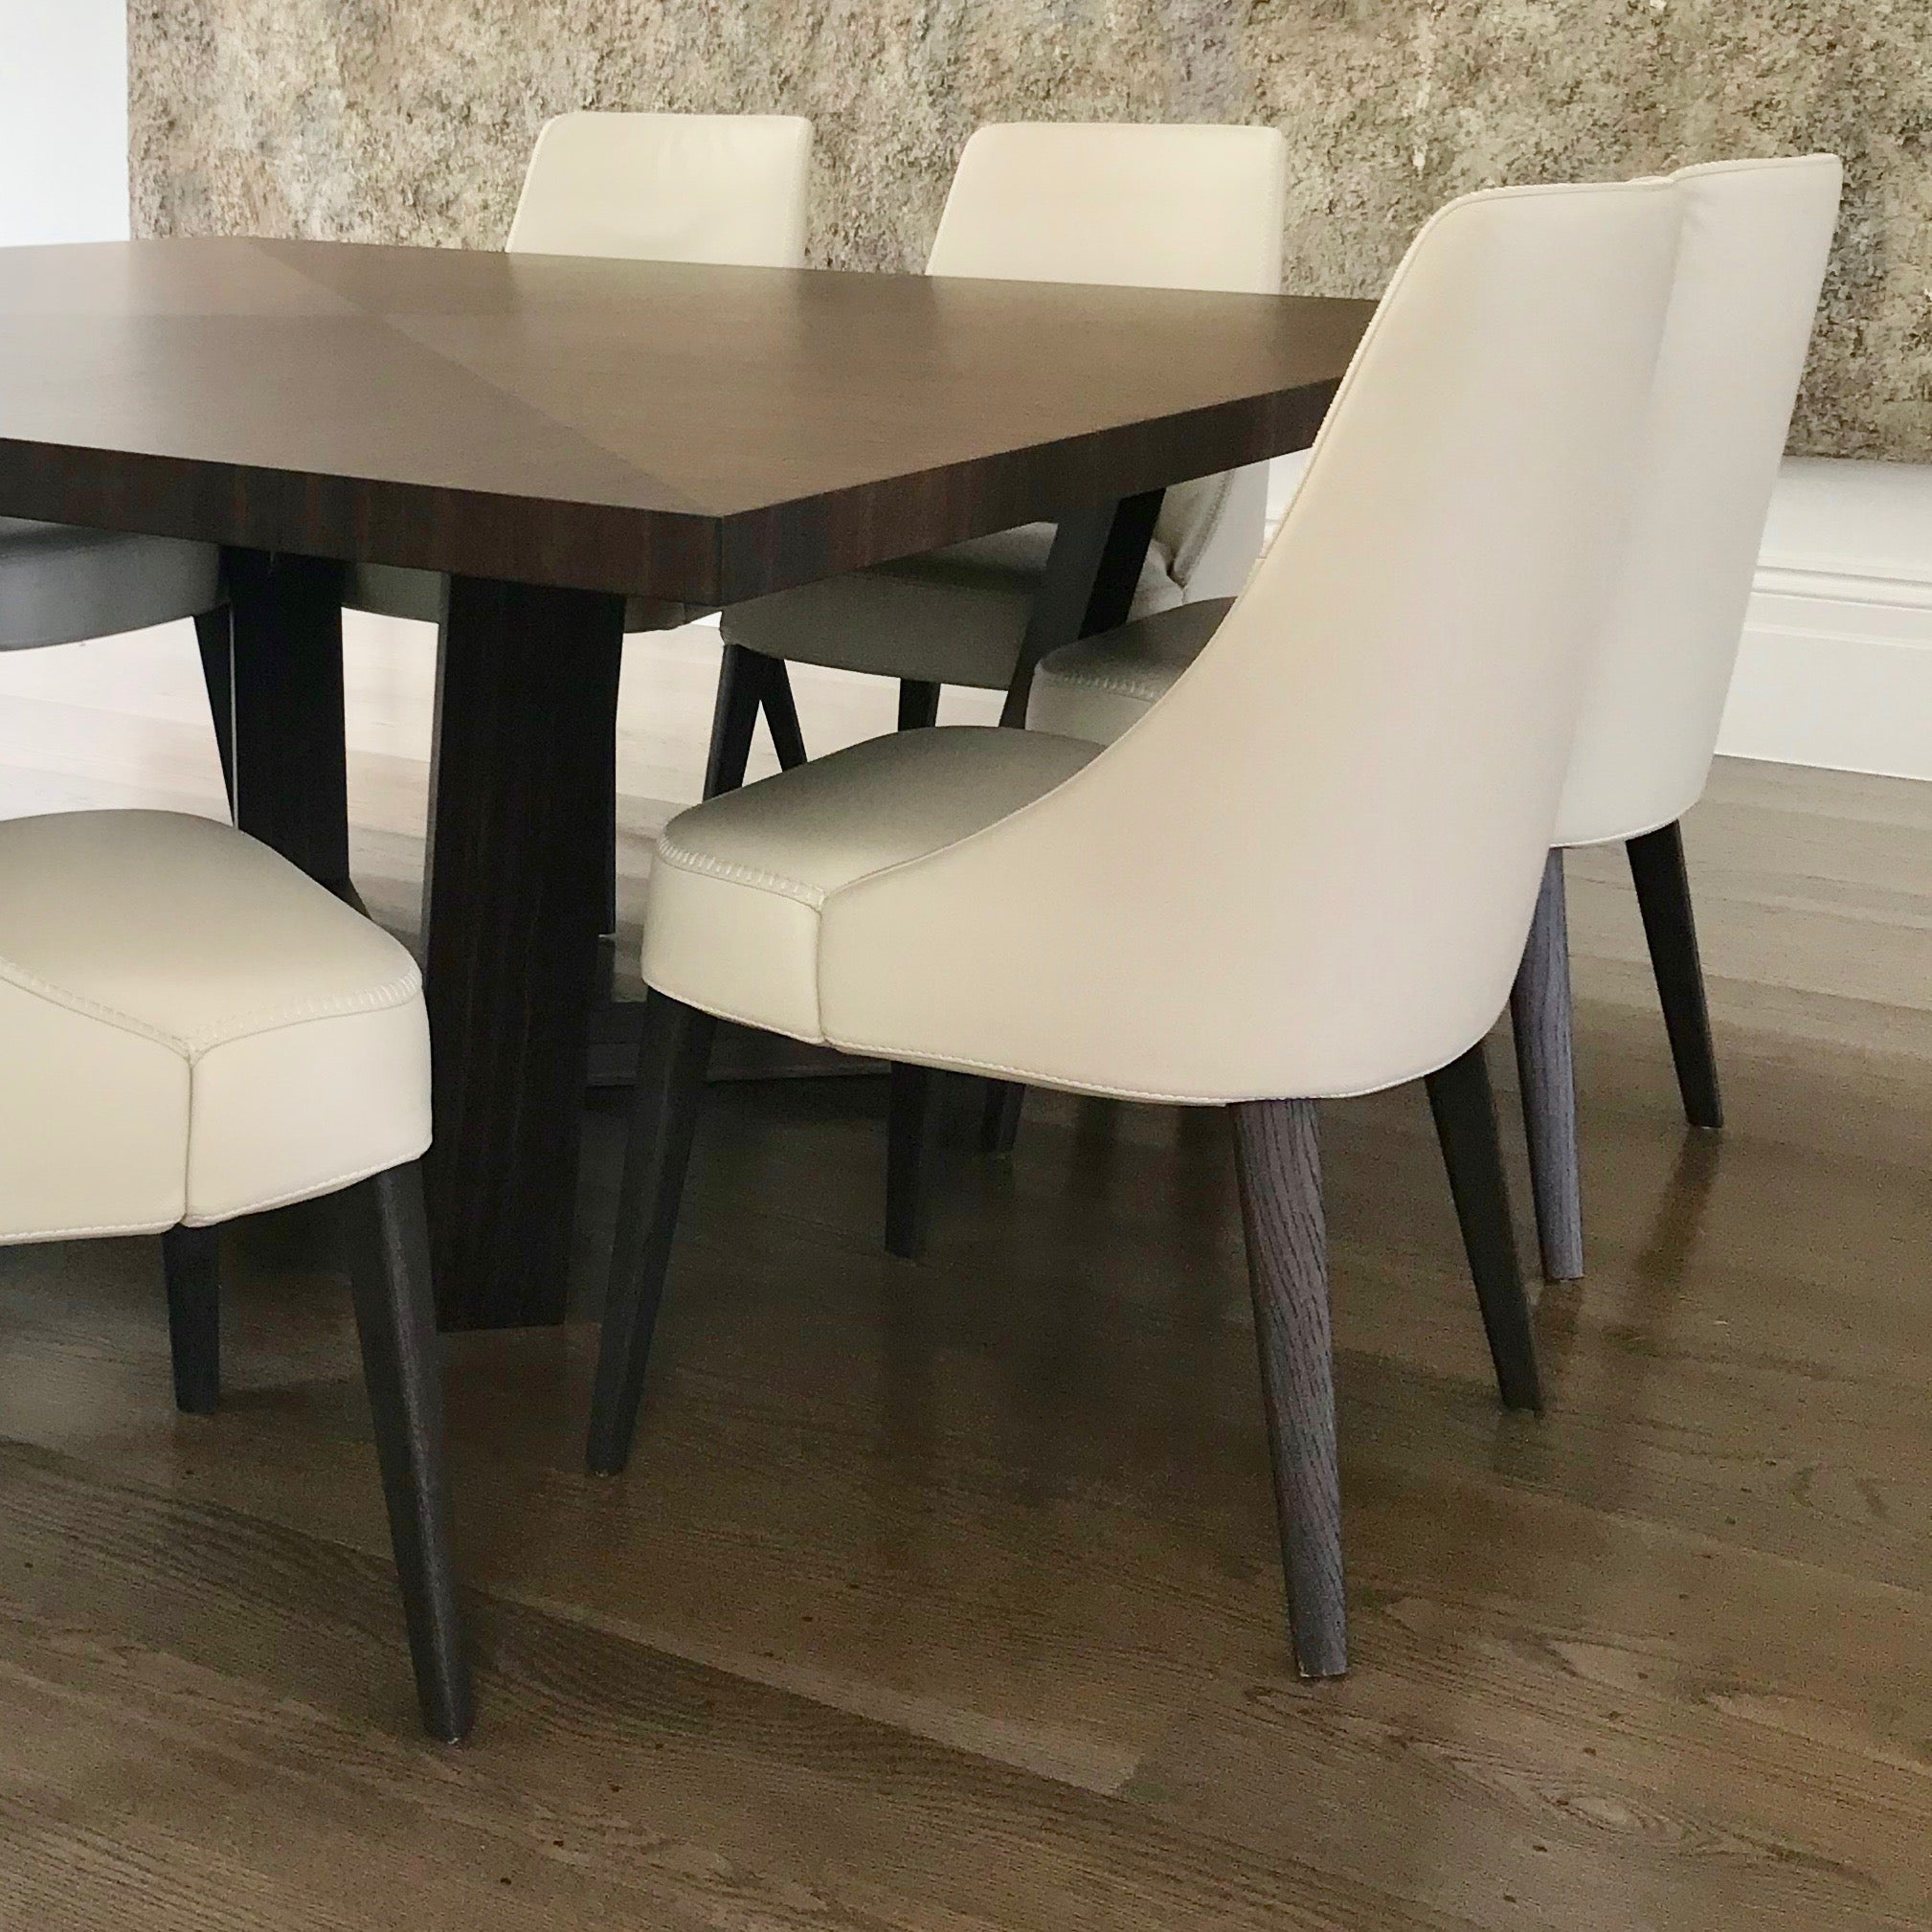 Set of FOUR Febo Dining Chairs by Antonio Citterio for Maxalto (2 sets available)